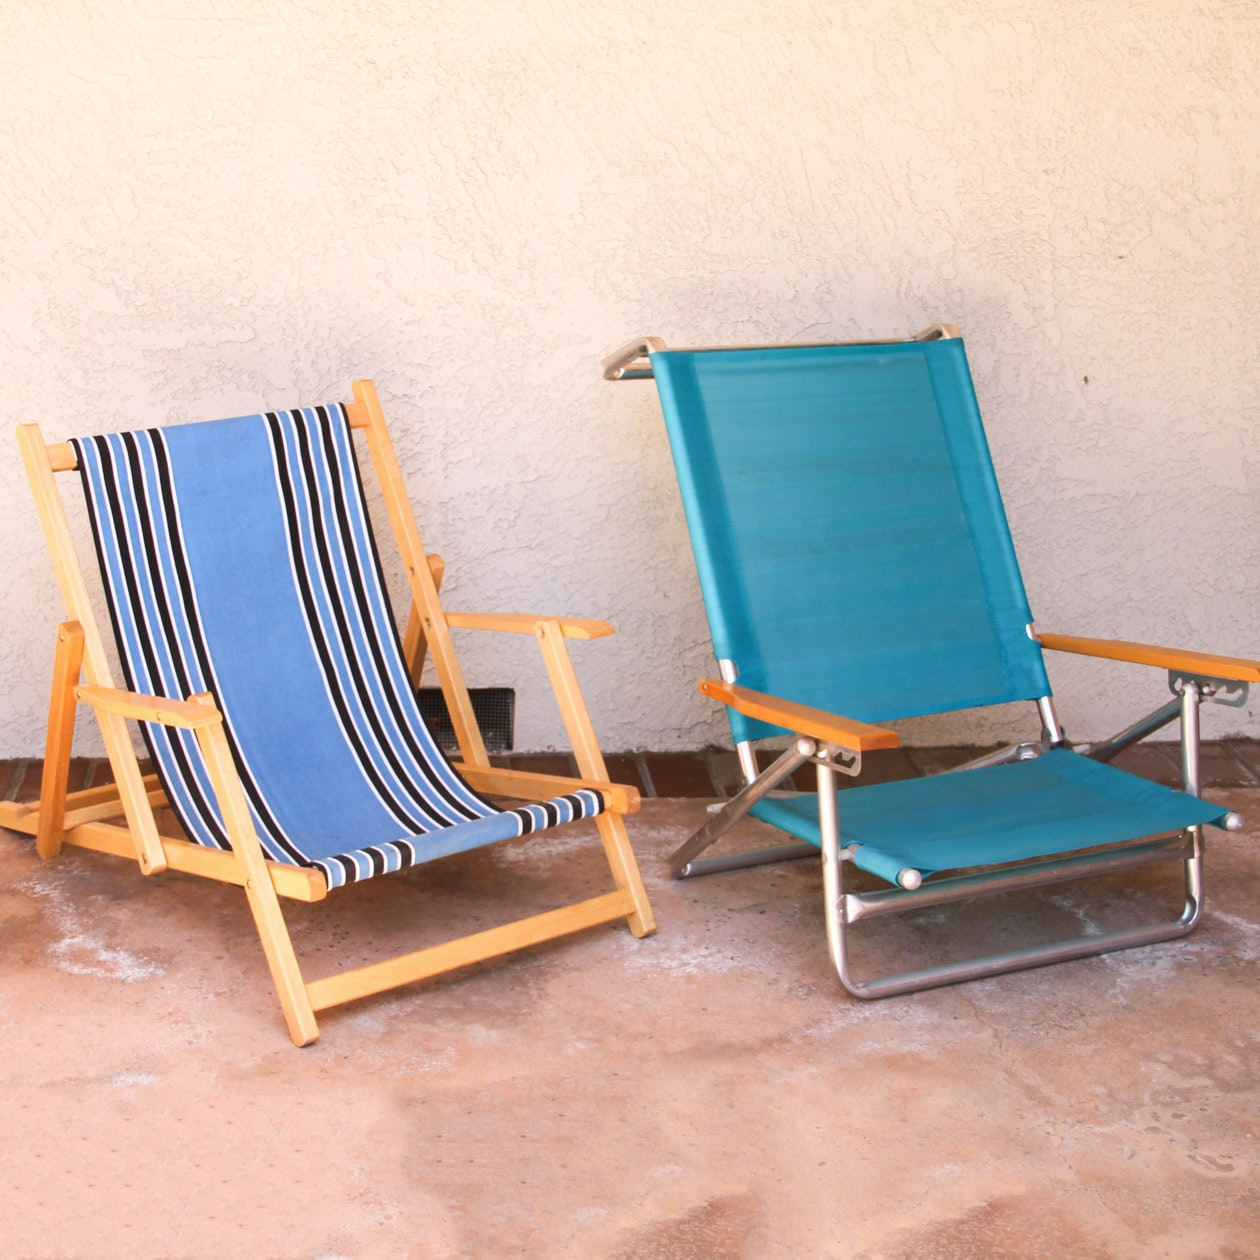 Pair of Vintage Wooden Beach Chairs